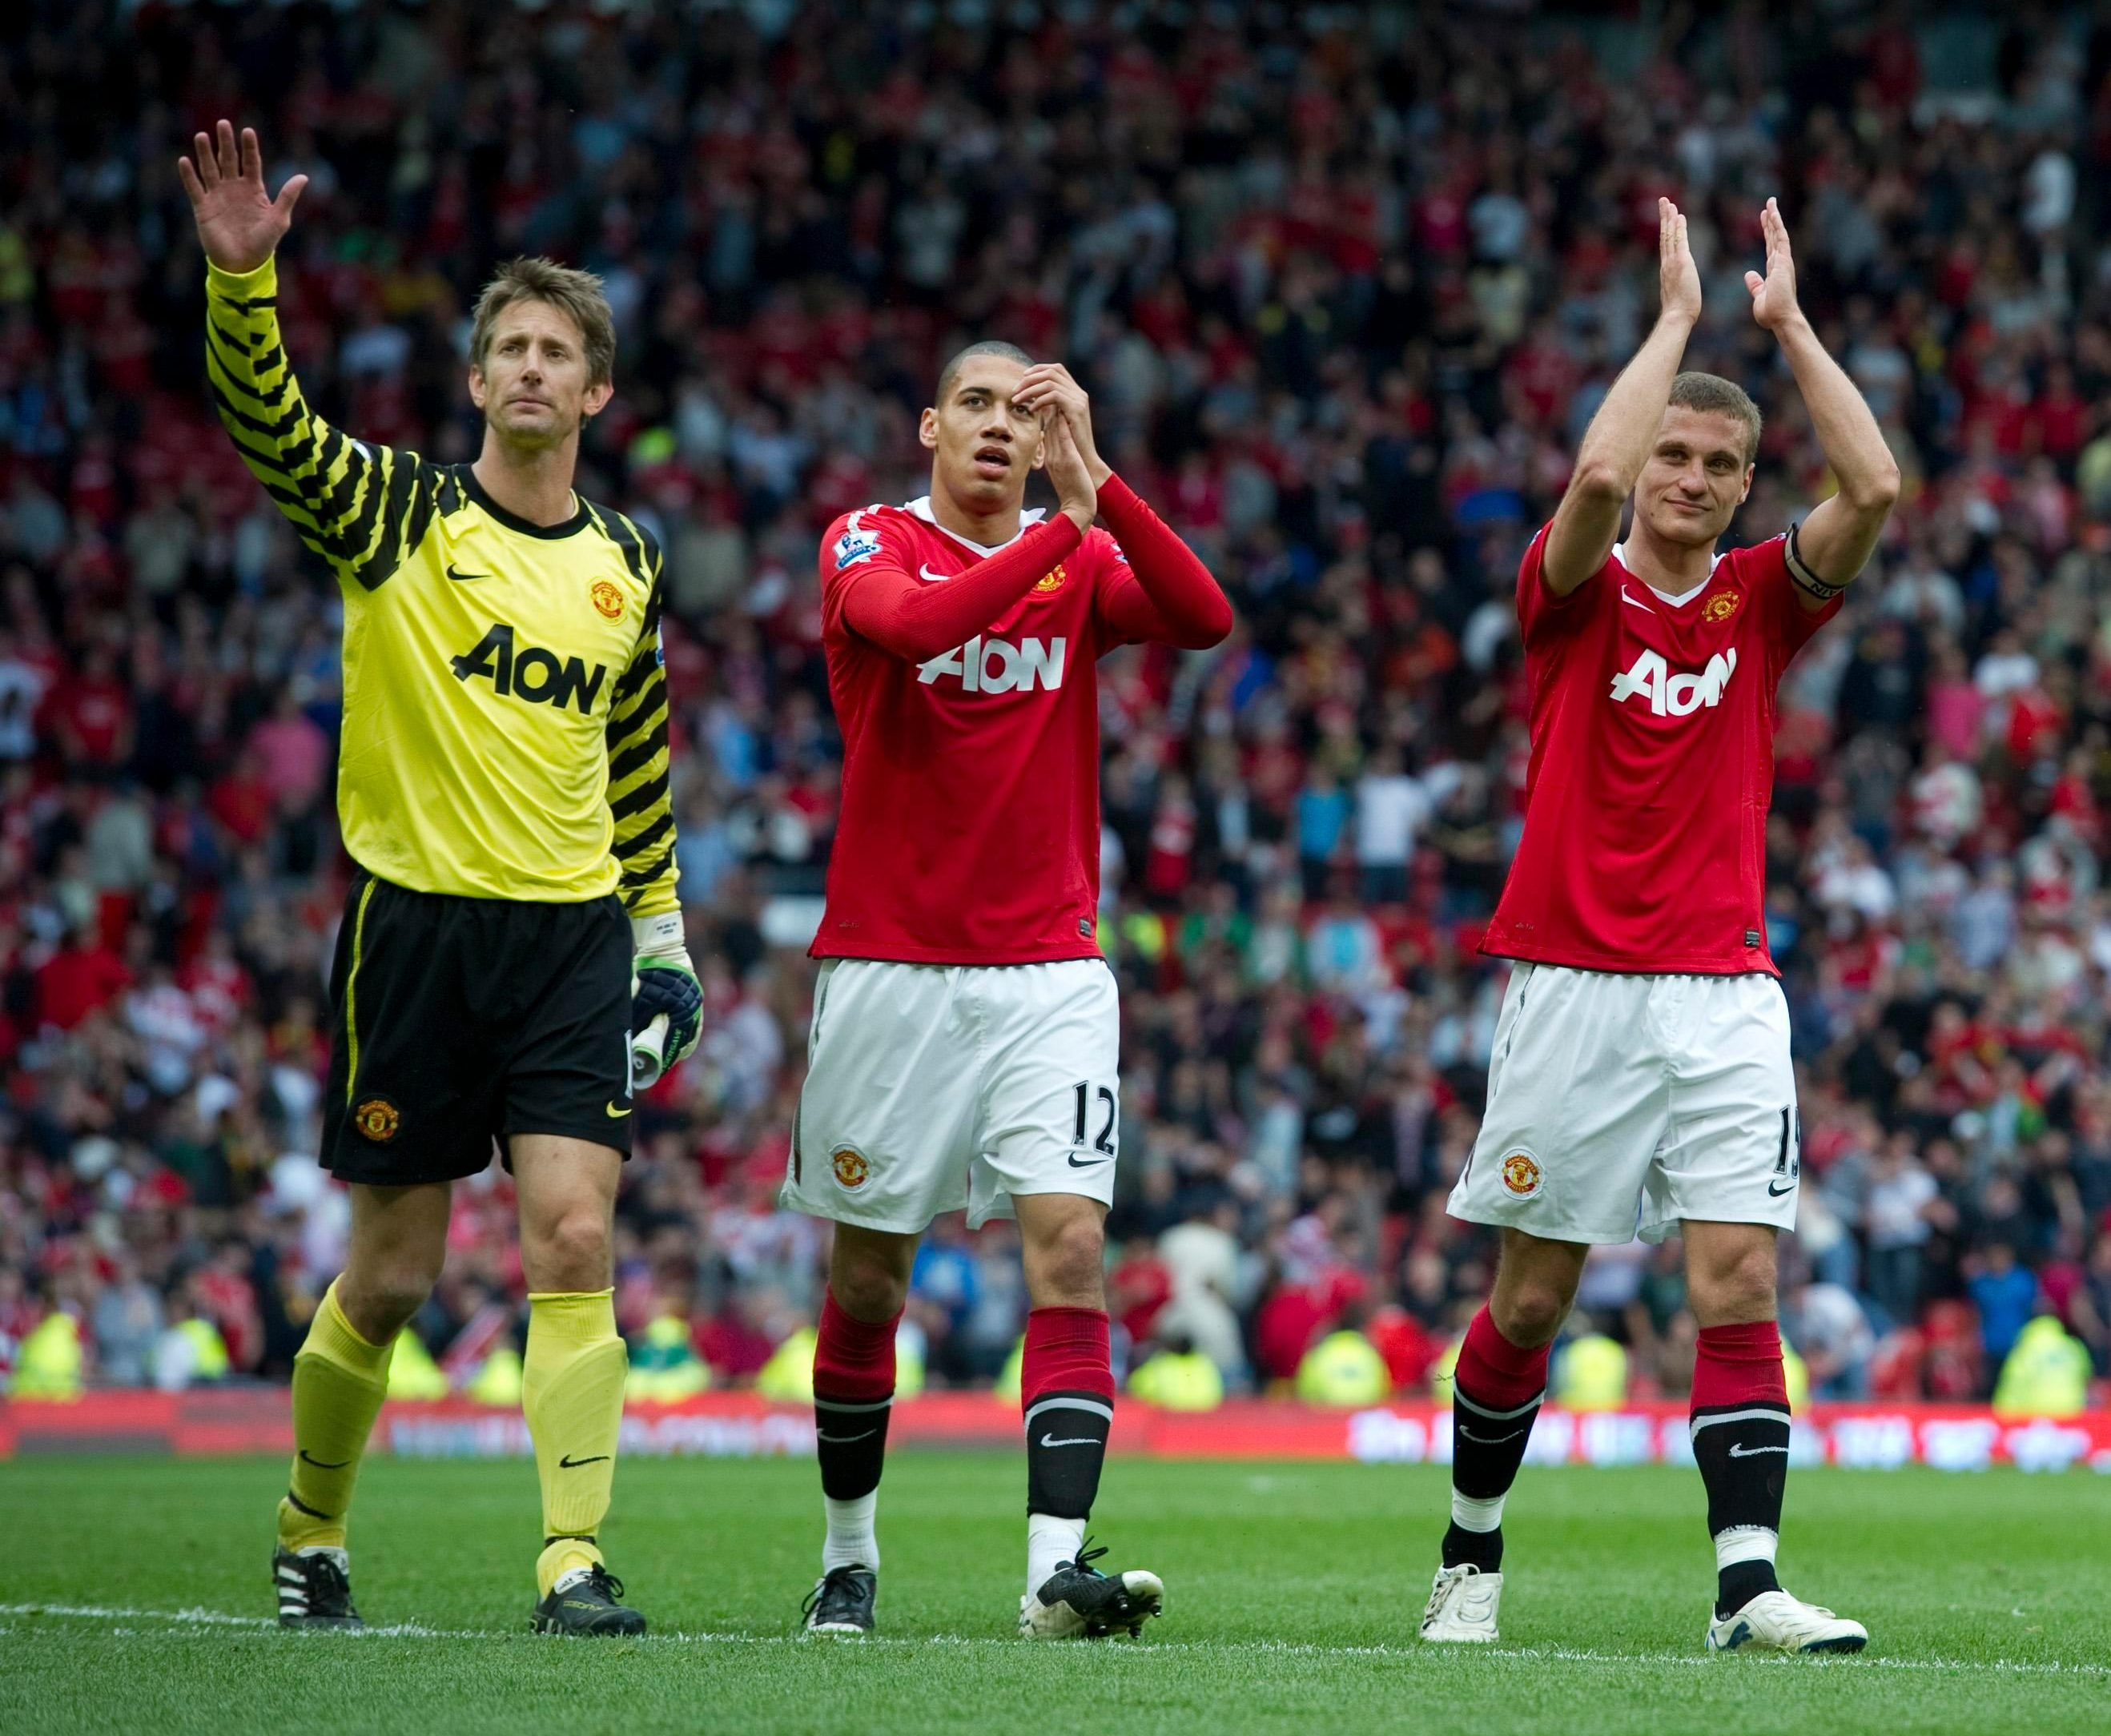 The pair didn't get the opportunity to play alongside Vidic and Ferdiand as much as they would've liked